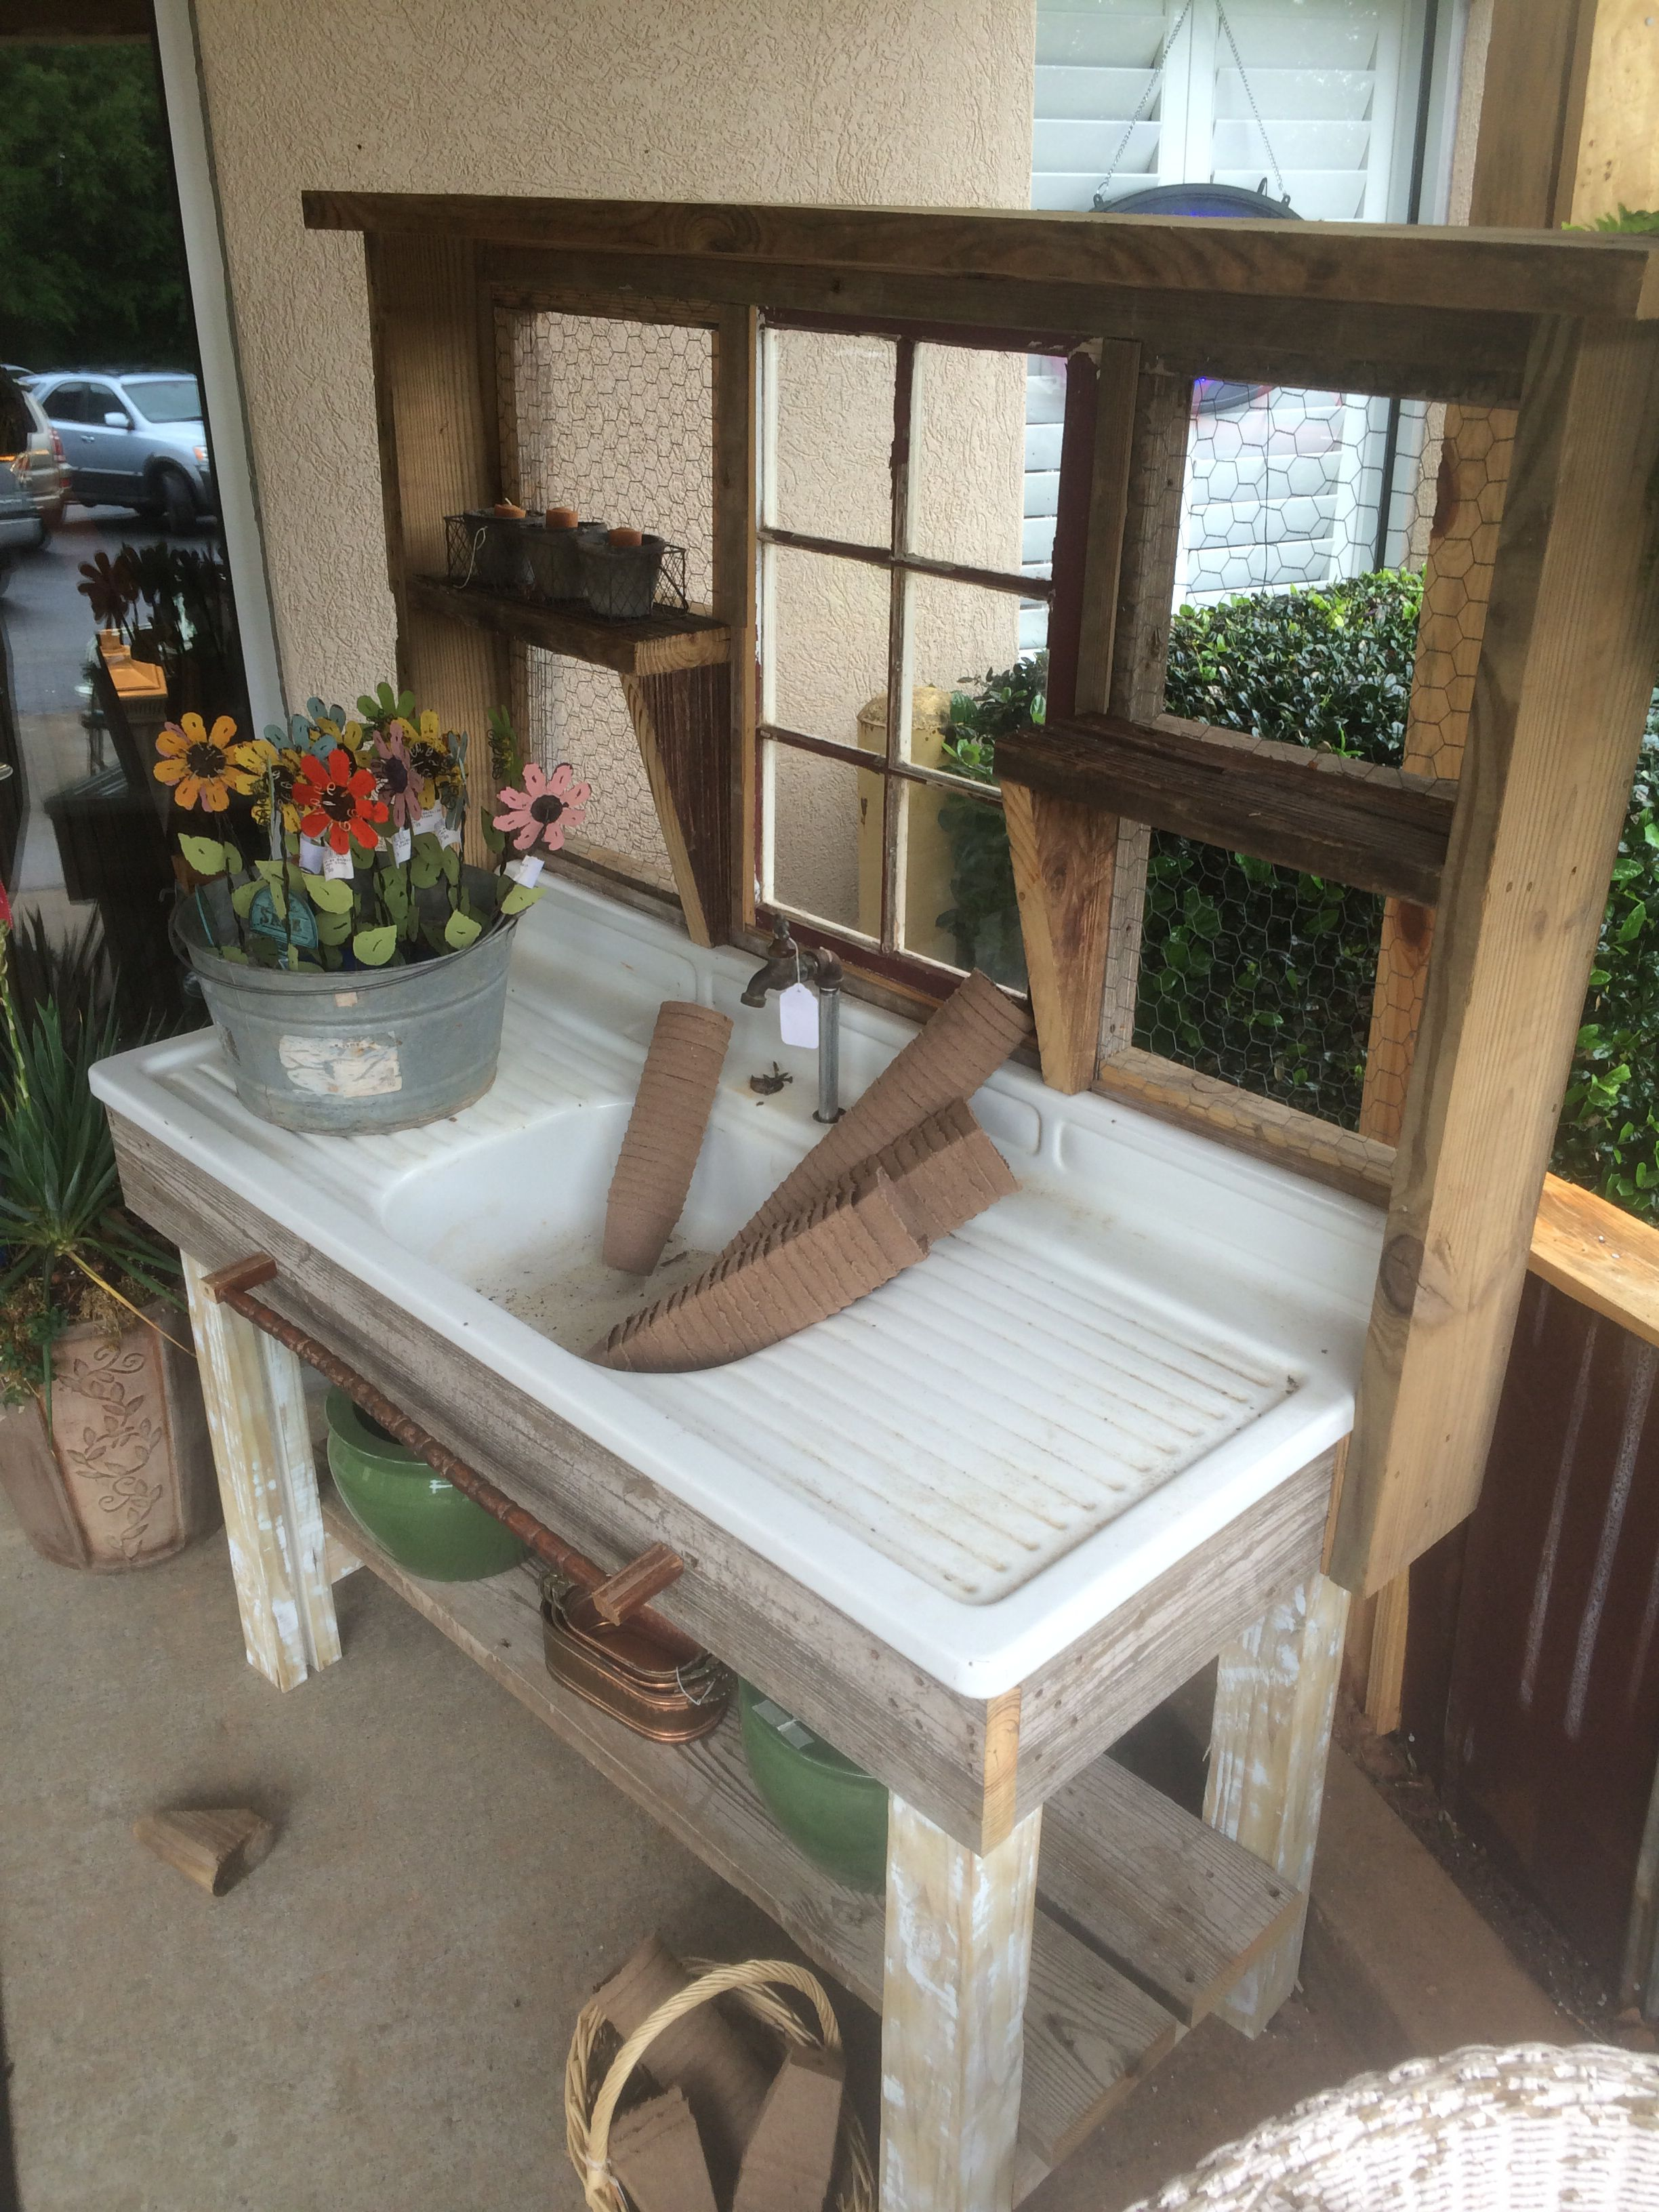 Lakewood 3 Person Swing, I Saw This Potting Bench At A Local Antique Shop I Must Build One I Have Two Old Porcelain Sinks Jus Potting Bench Plans Potting Bench Outdoor Potting Bench